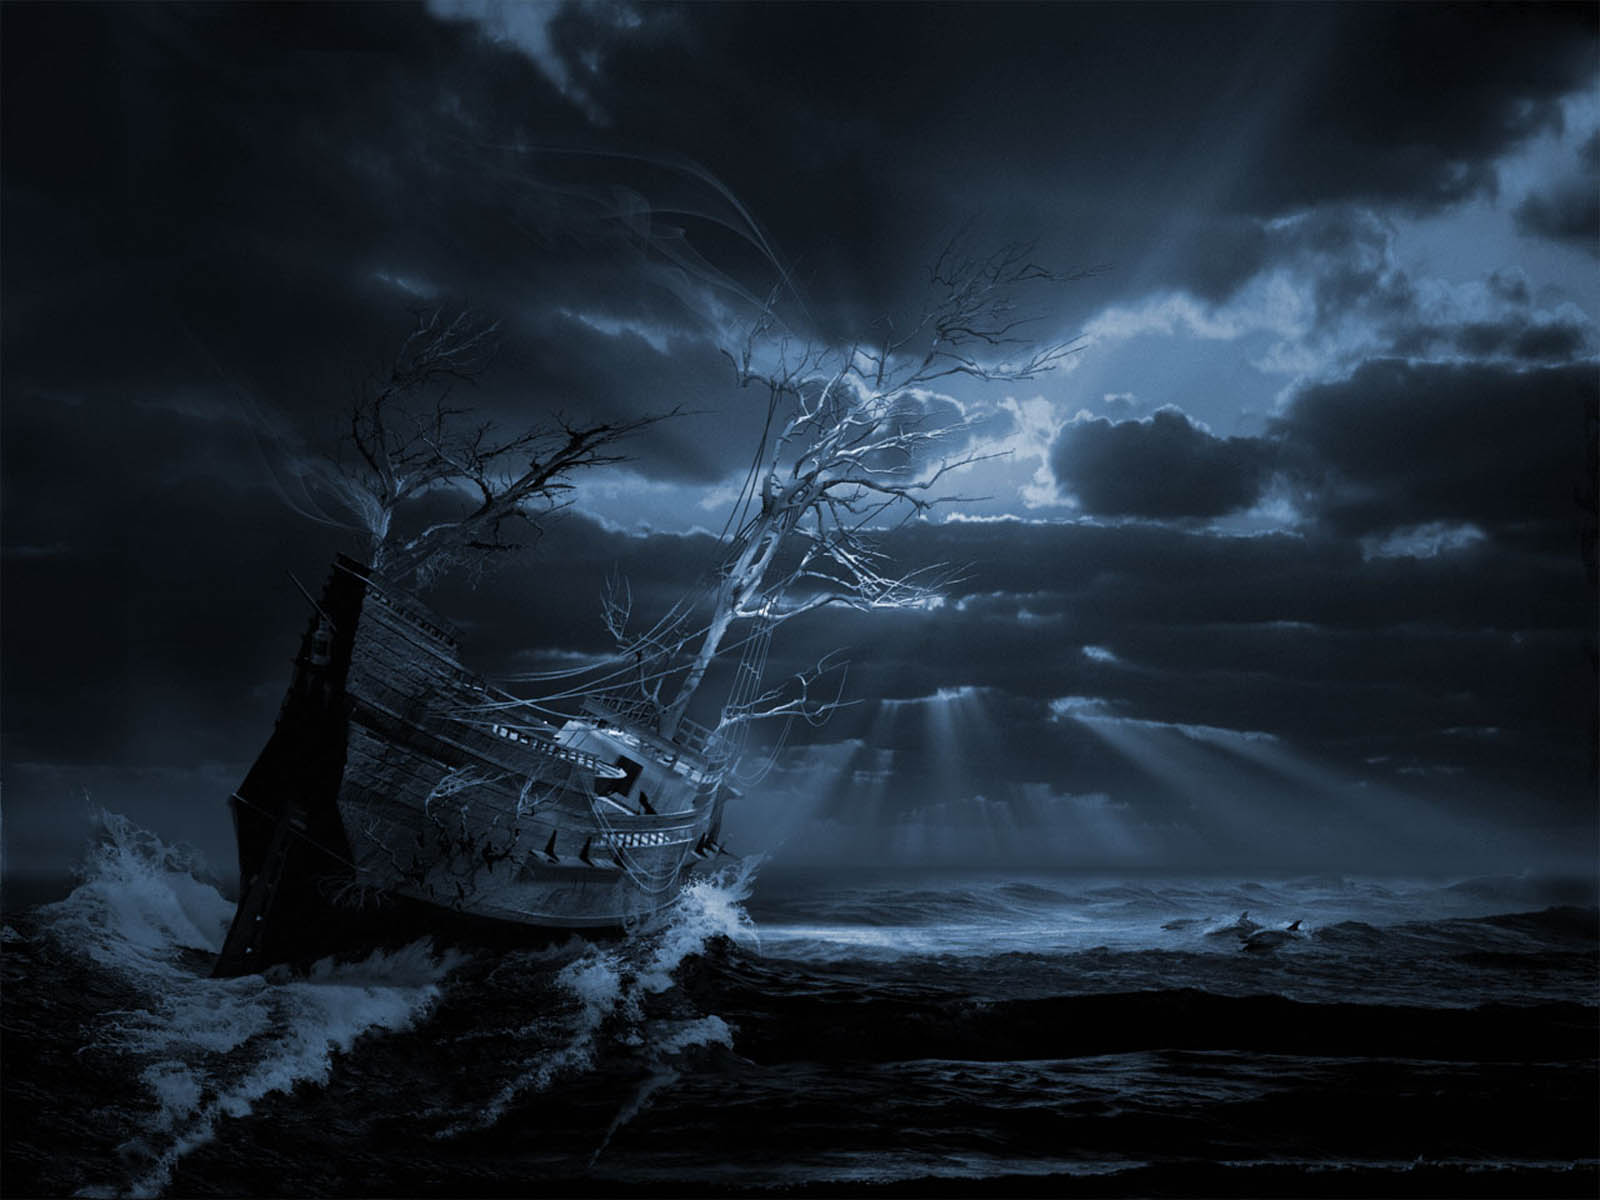 Tag Ghost Ship Wallpapers Images Photos Pictures and Backgrounds 1600x1200